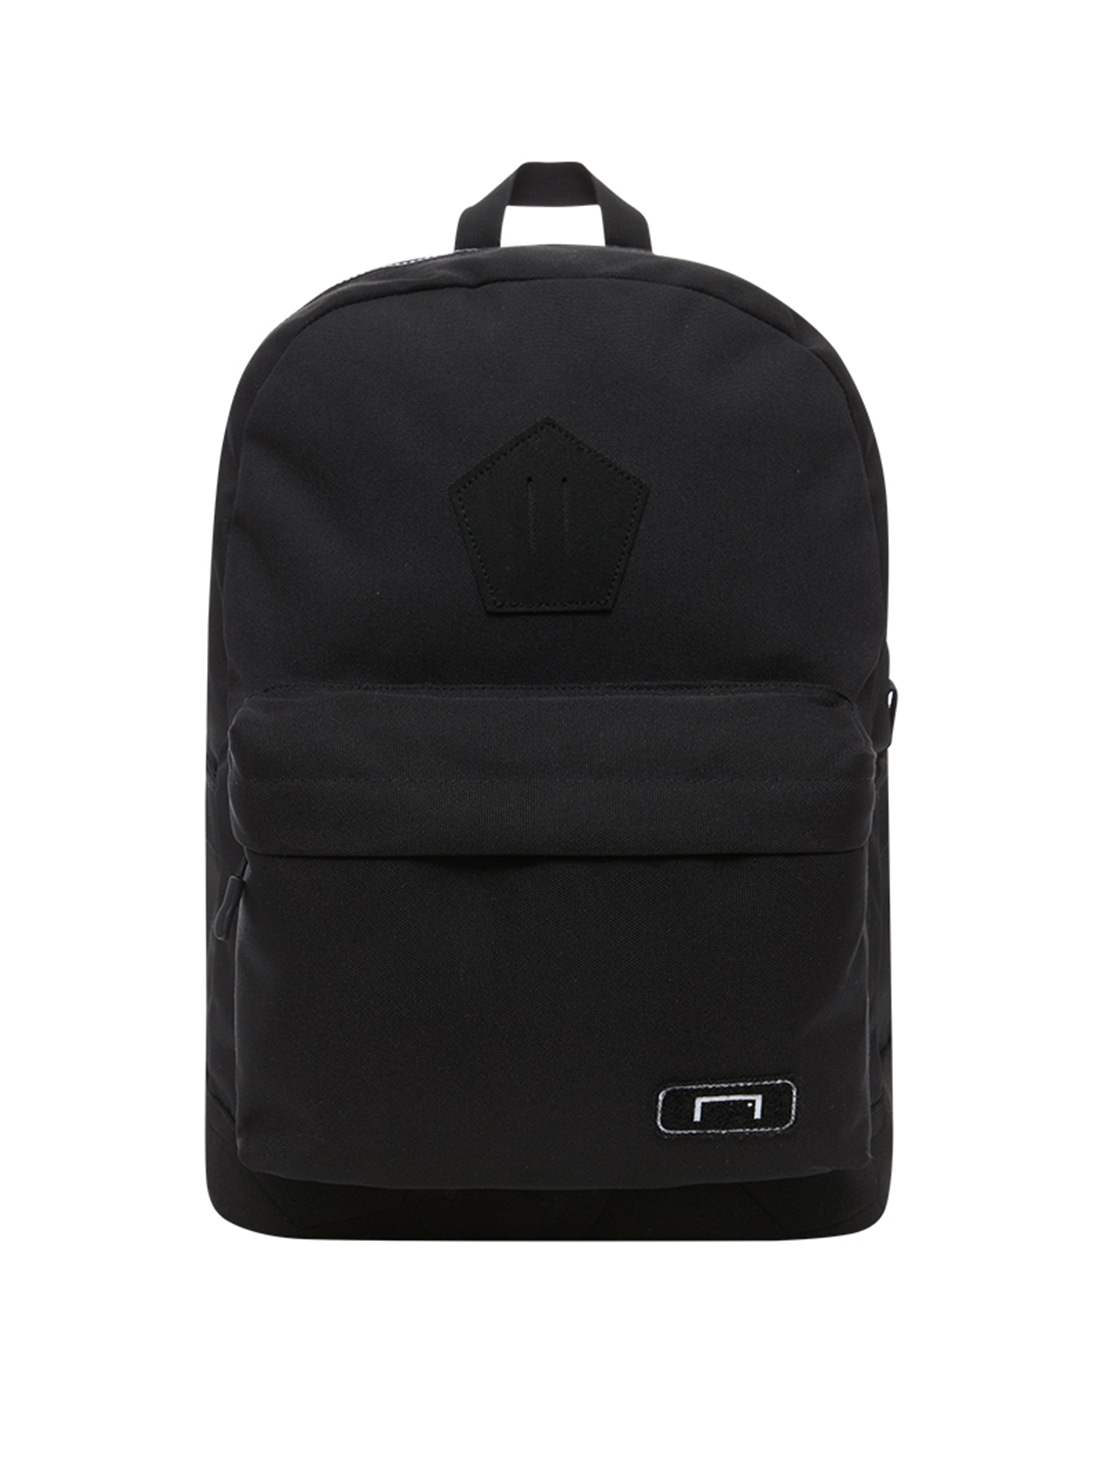 GOALSTUDIO GOAL SUEDE BACKPACK